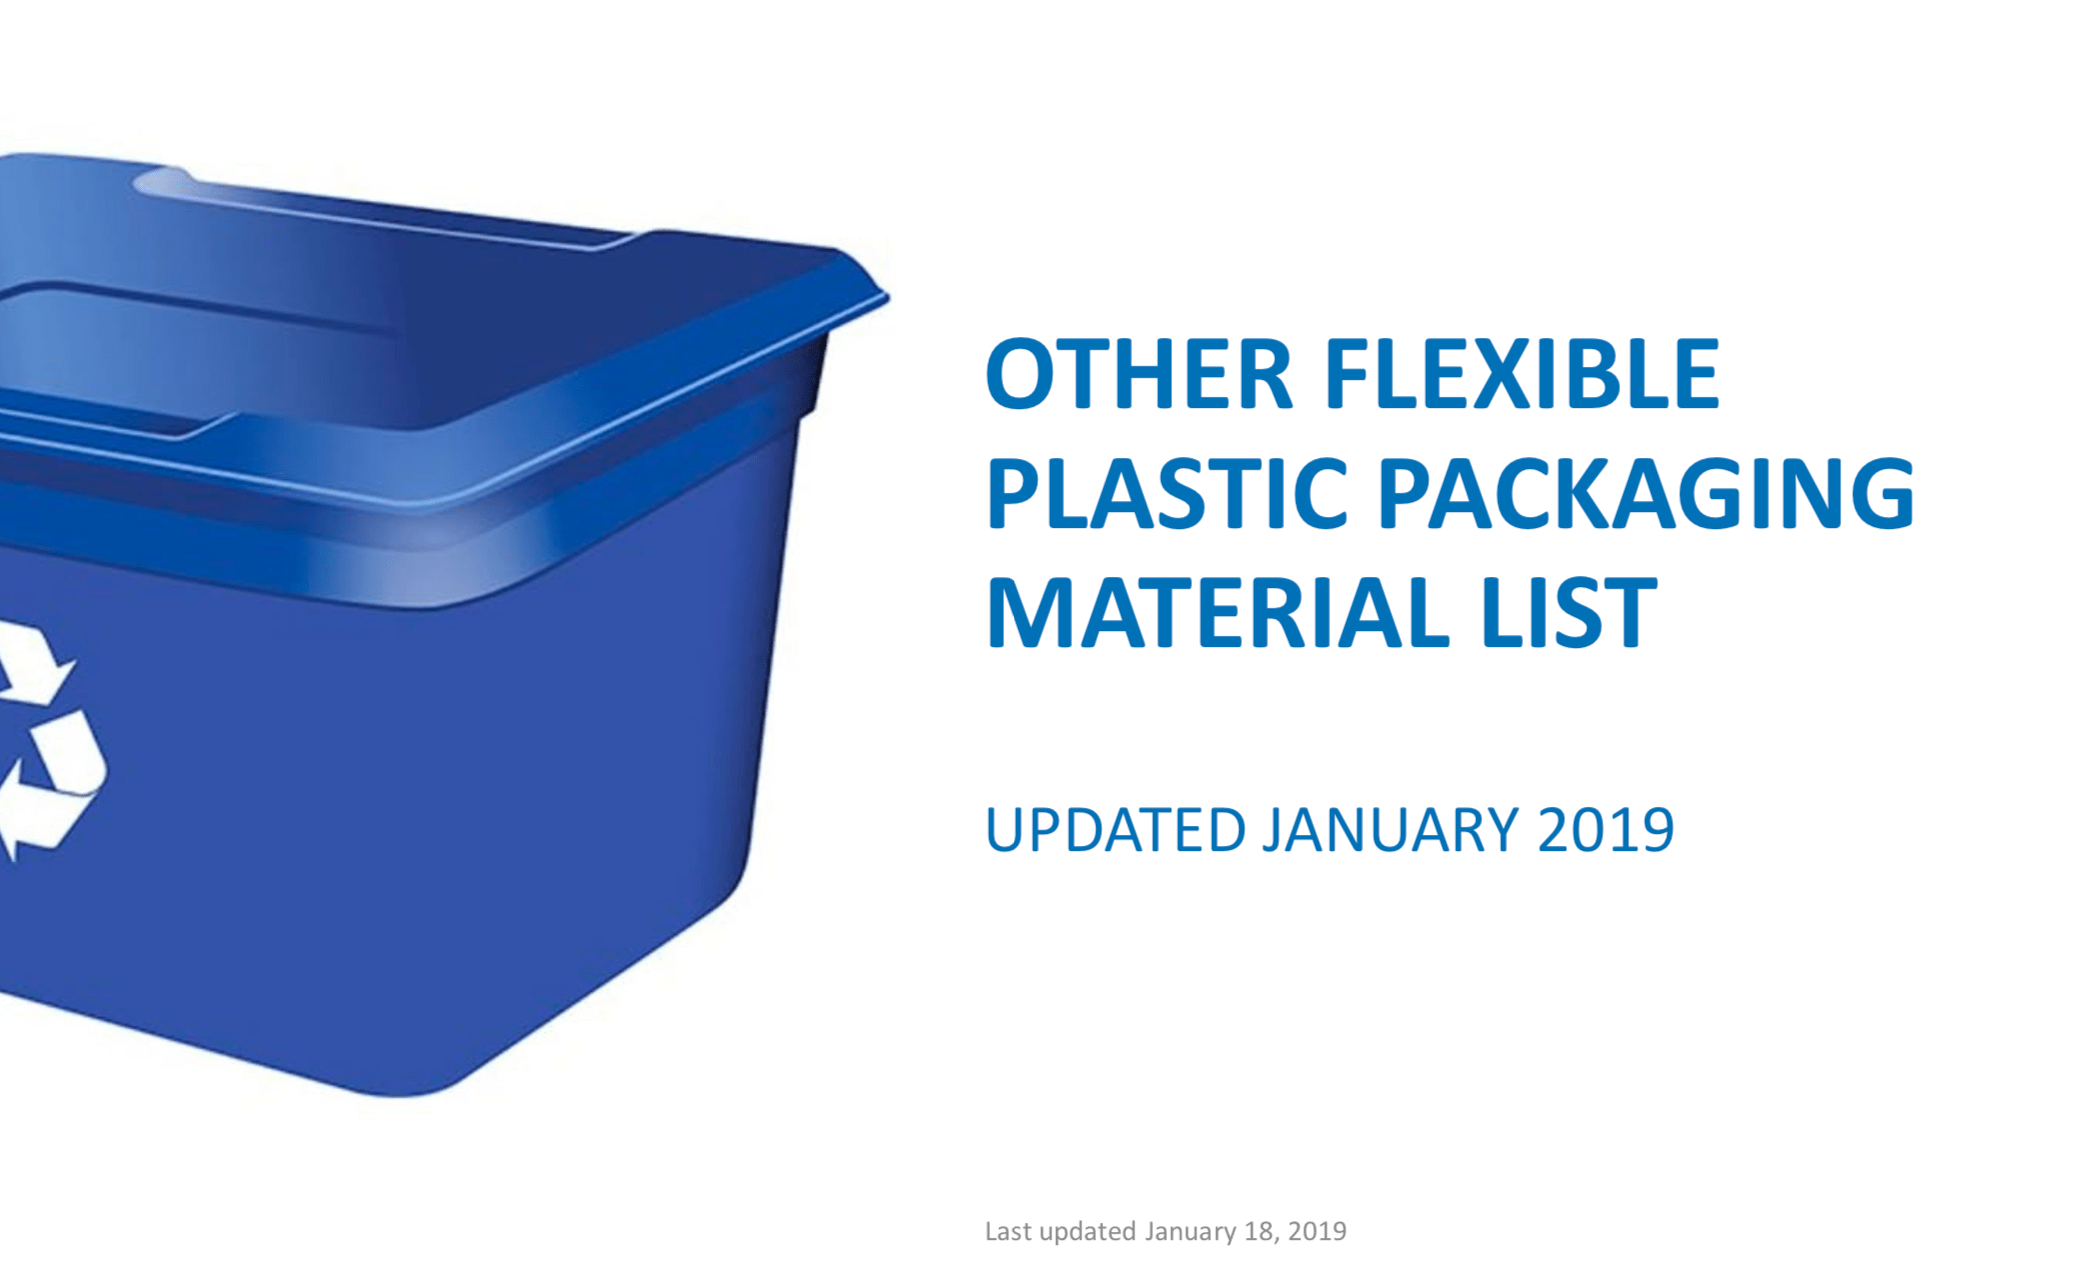 Update on Recycling Plastic Packaging Materials